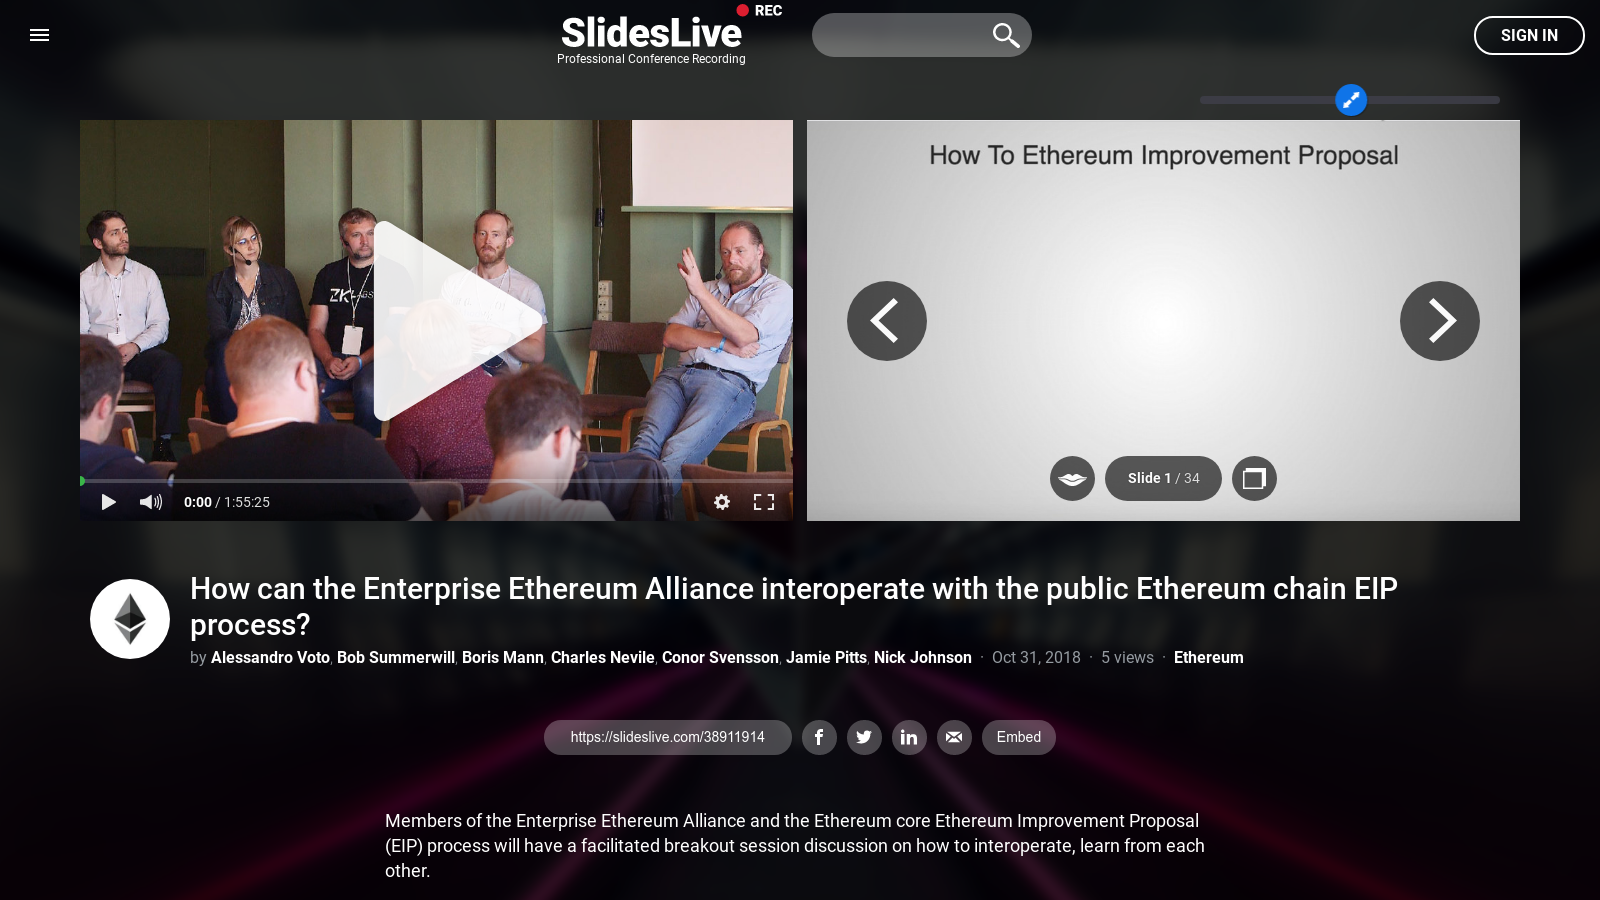 How can the Enterprise Ethereum Alliance interoperate with the public Ethereum chain EIP process?